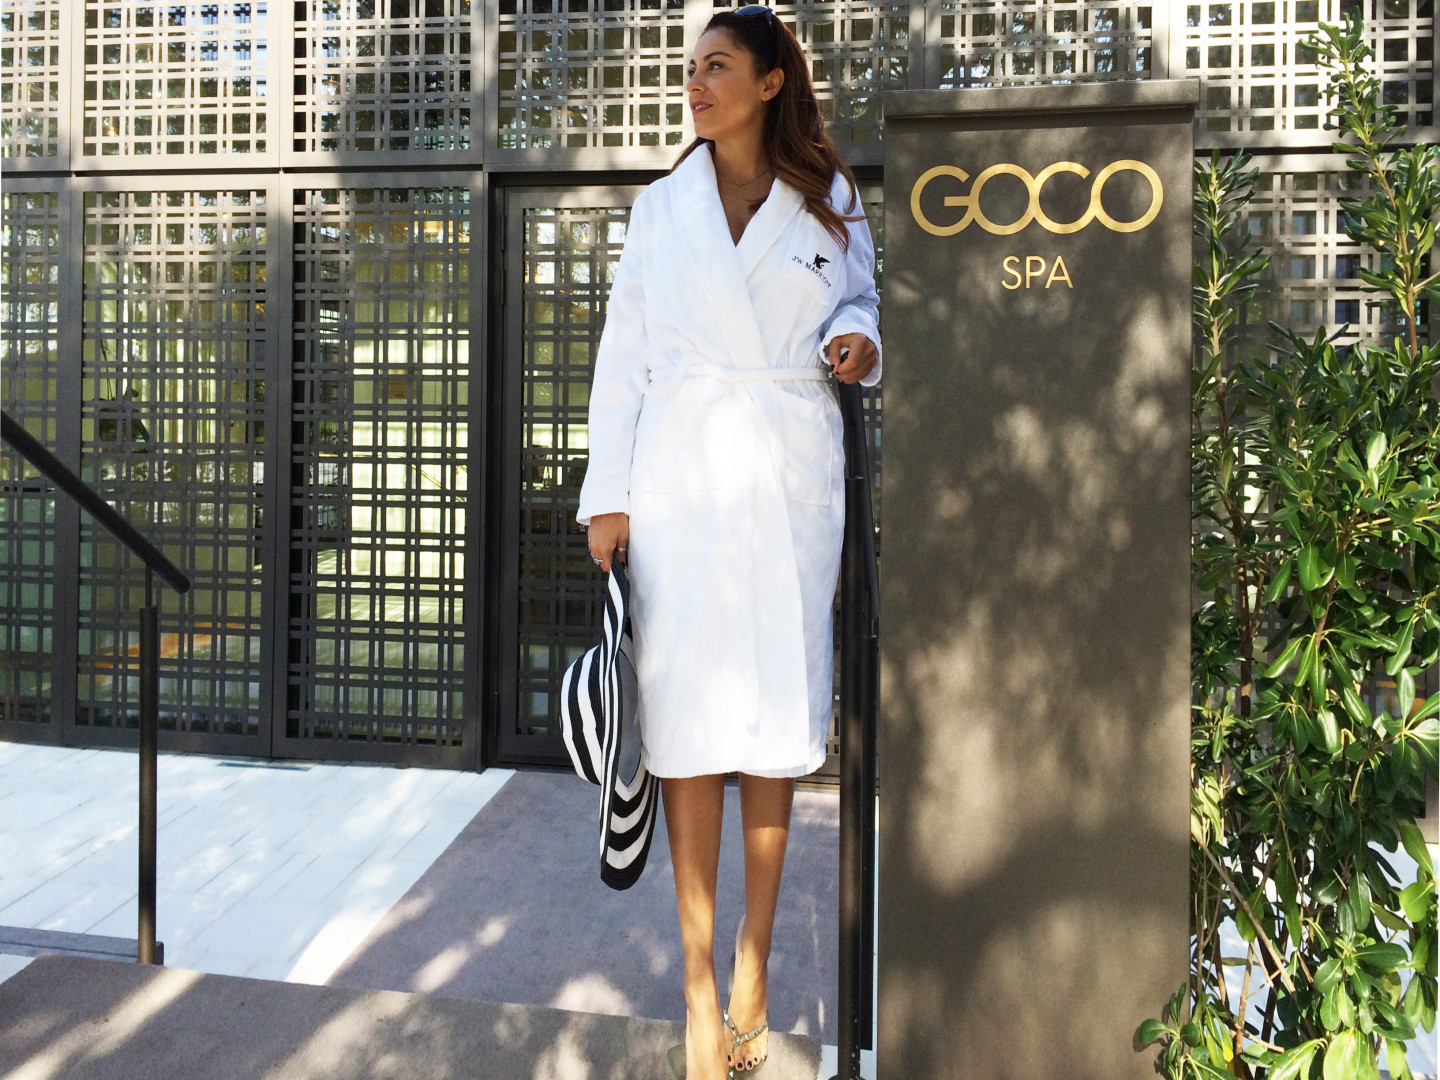 JW-Marriott-Venice-Resort-Goco-Spa-travel-valentina-coco-fashion-blogger